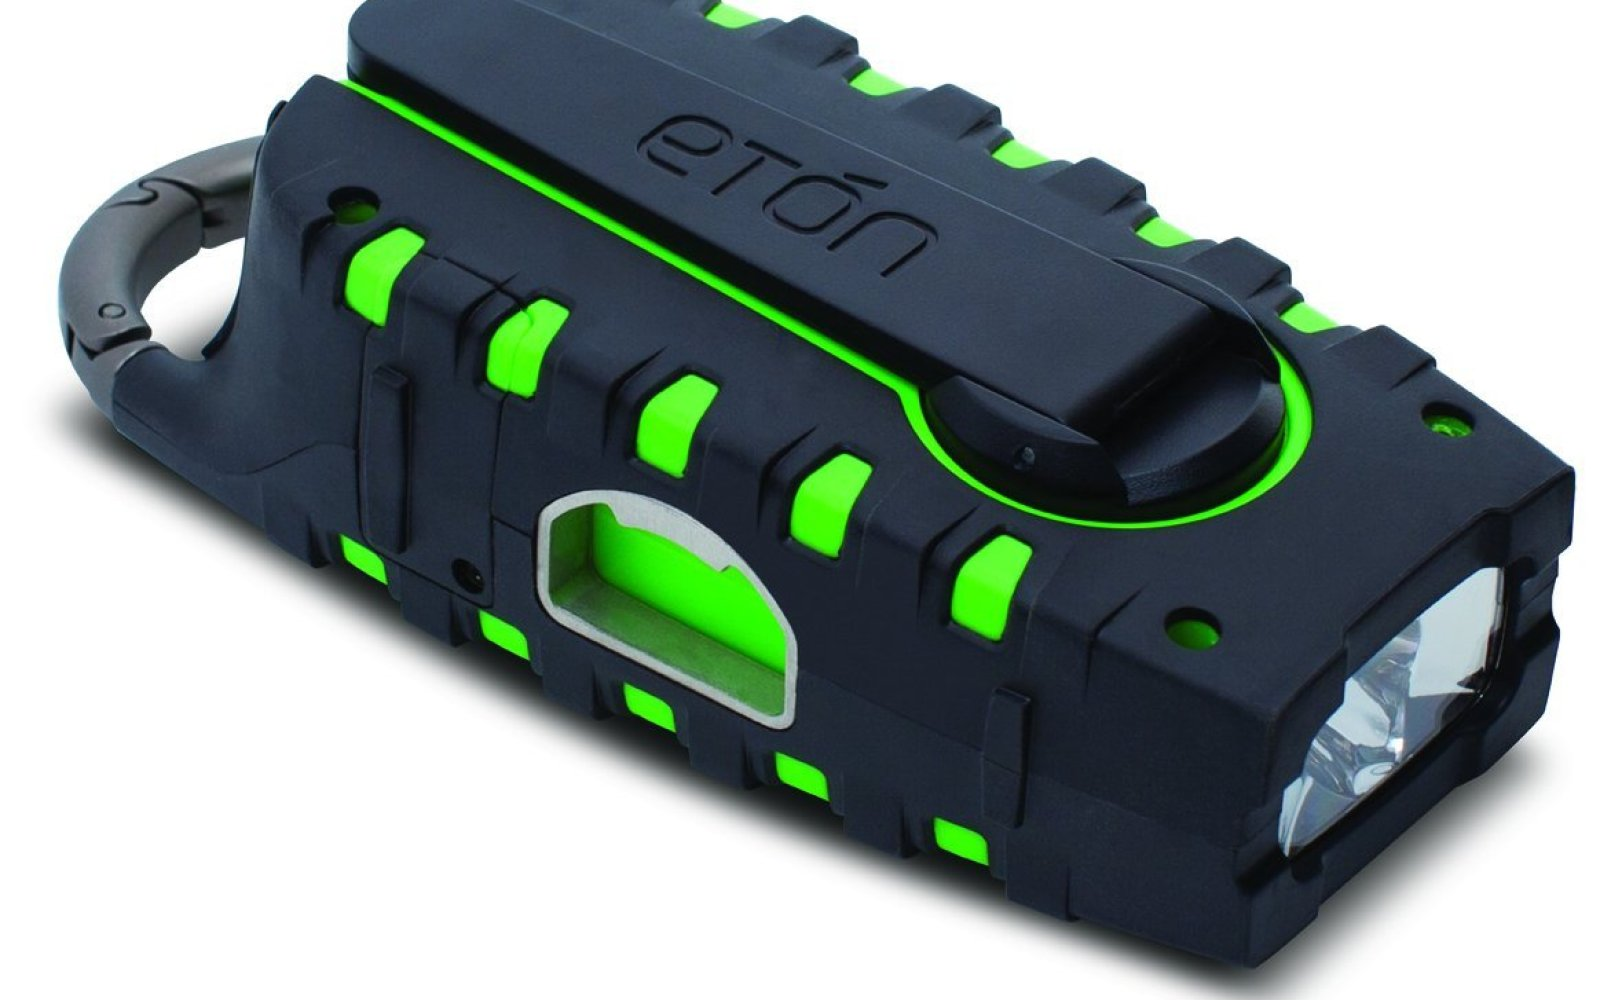 Quick Review: Eton Scorpion II is a rugged solar electronic survival kit for $50